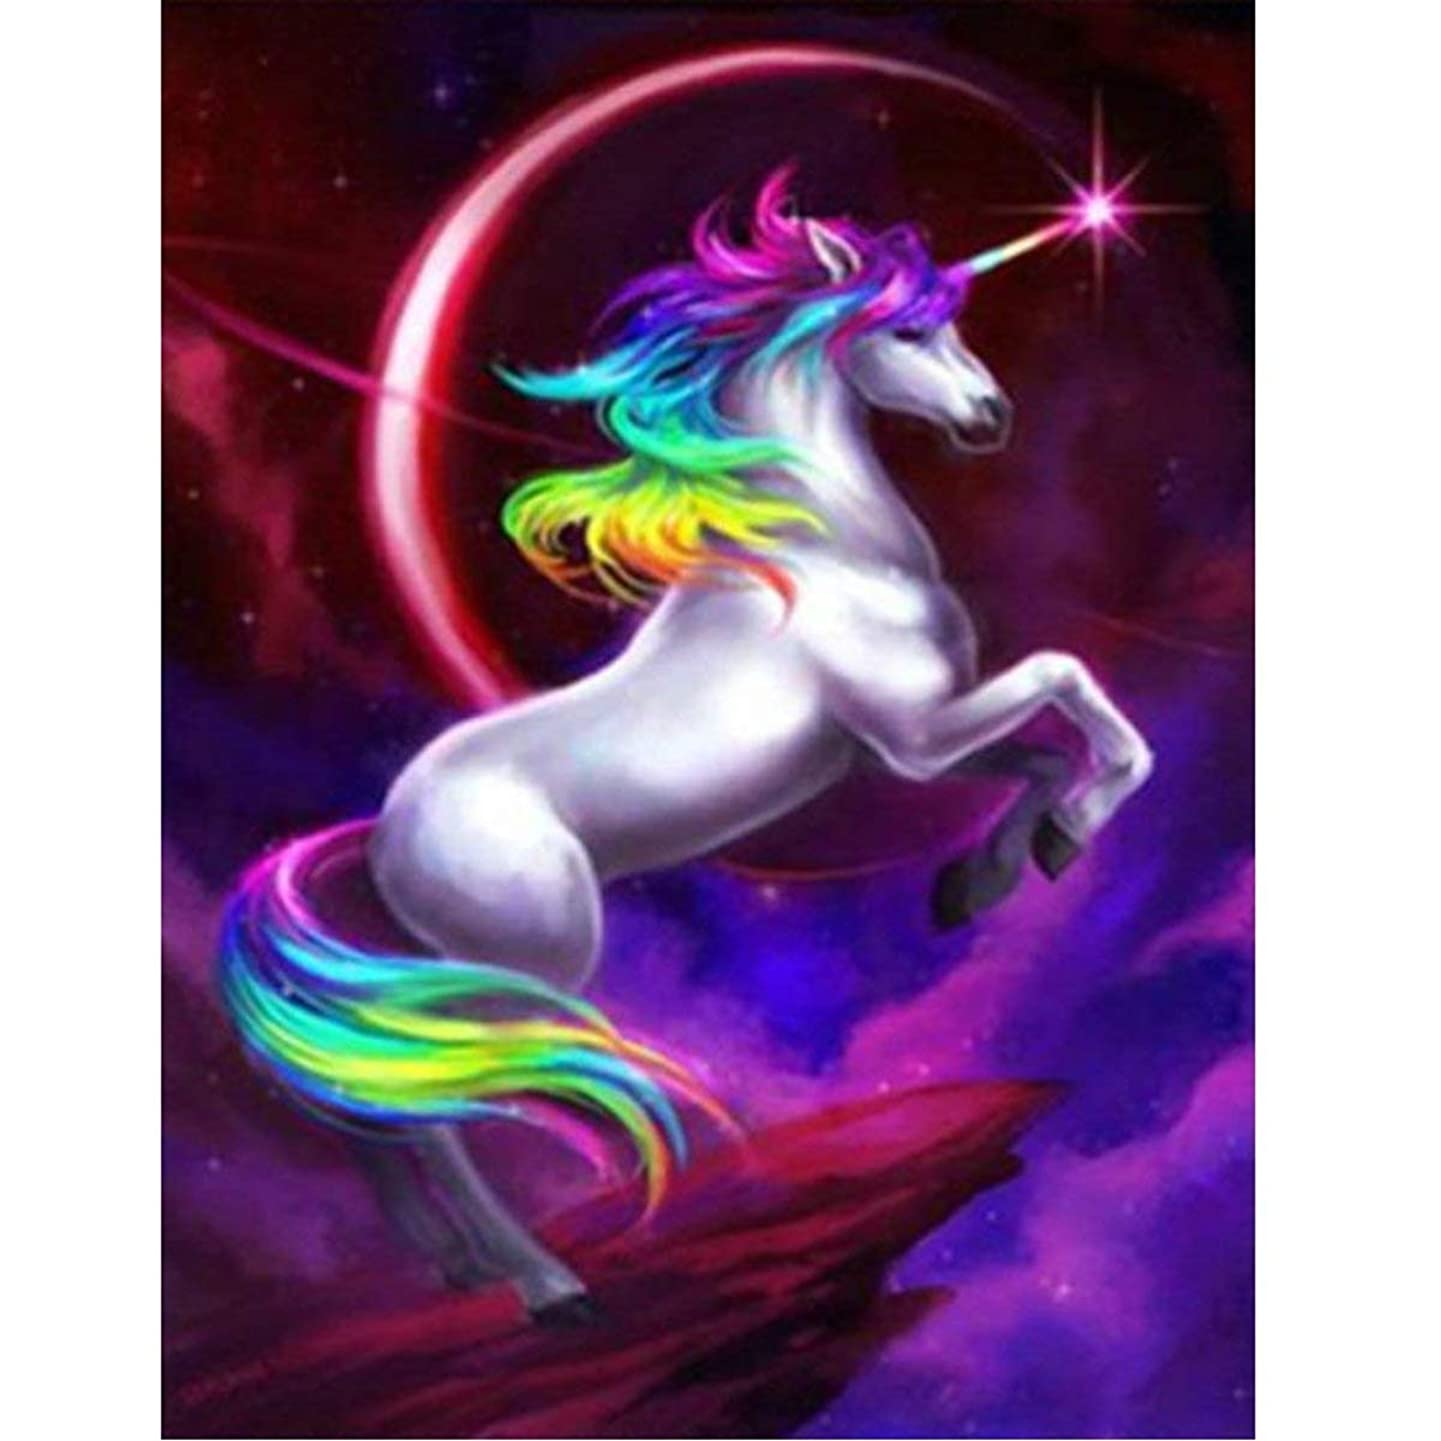 DIY 5D Diamond Painting by Number Kit, Full Drill Flying Unicorn Animal Embroidery Cross Stitch Rhinestone Pictures Arts Craft Home Wall Decor 11.8x15.8 inch